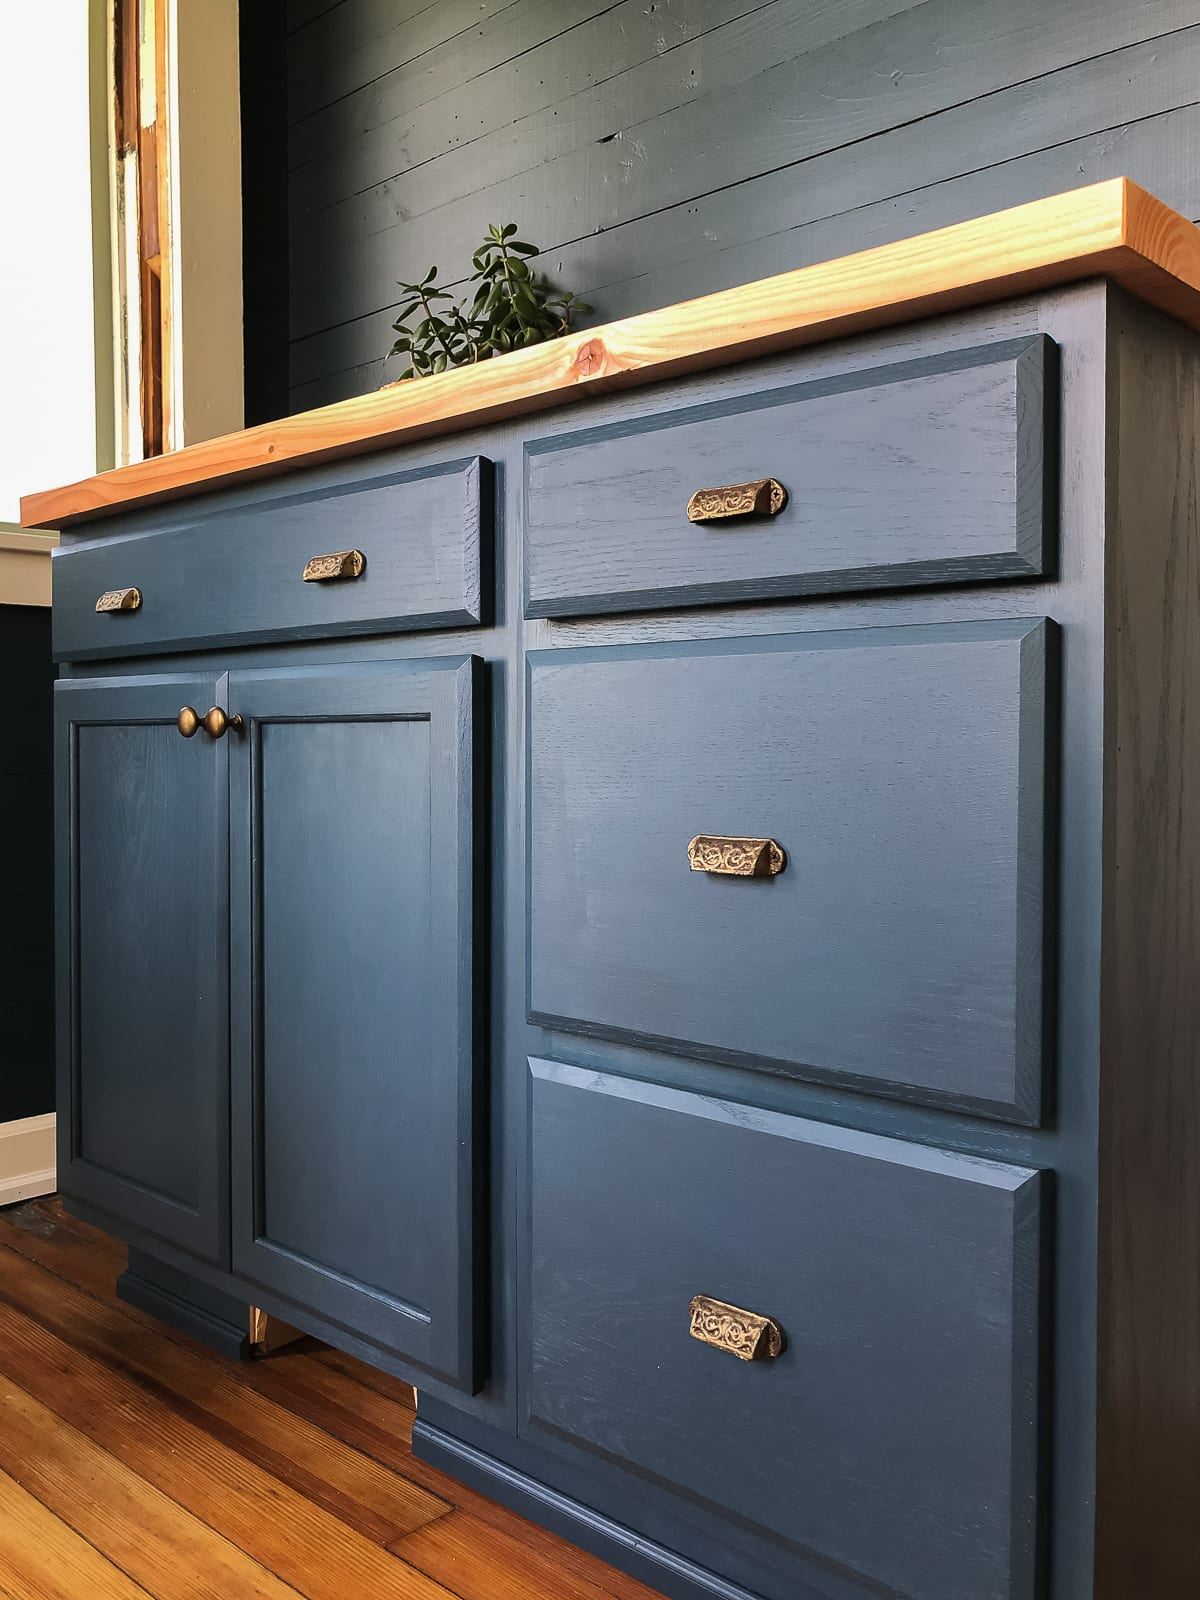 Painting Unfinished Cabinets How To Guide Blake Hill House